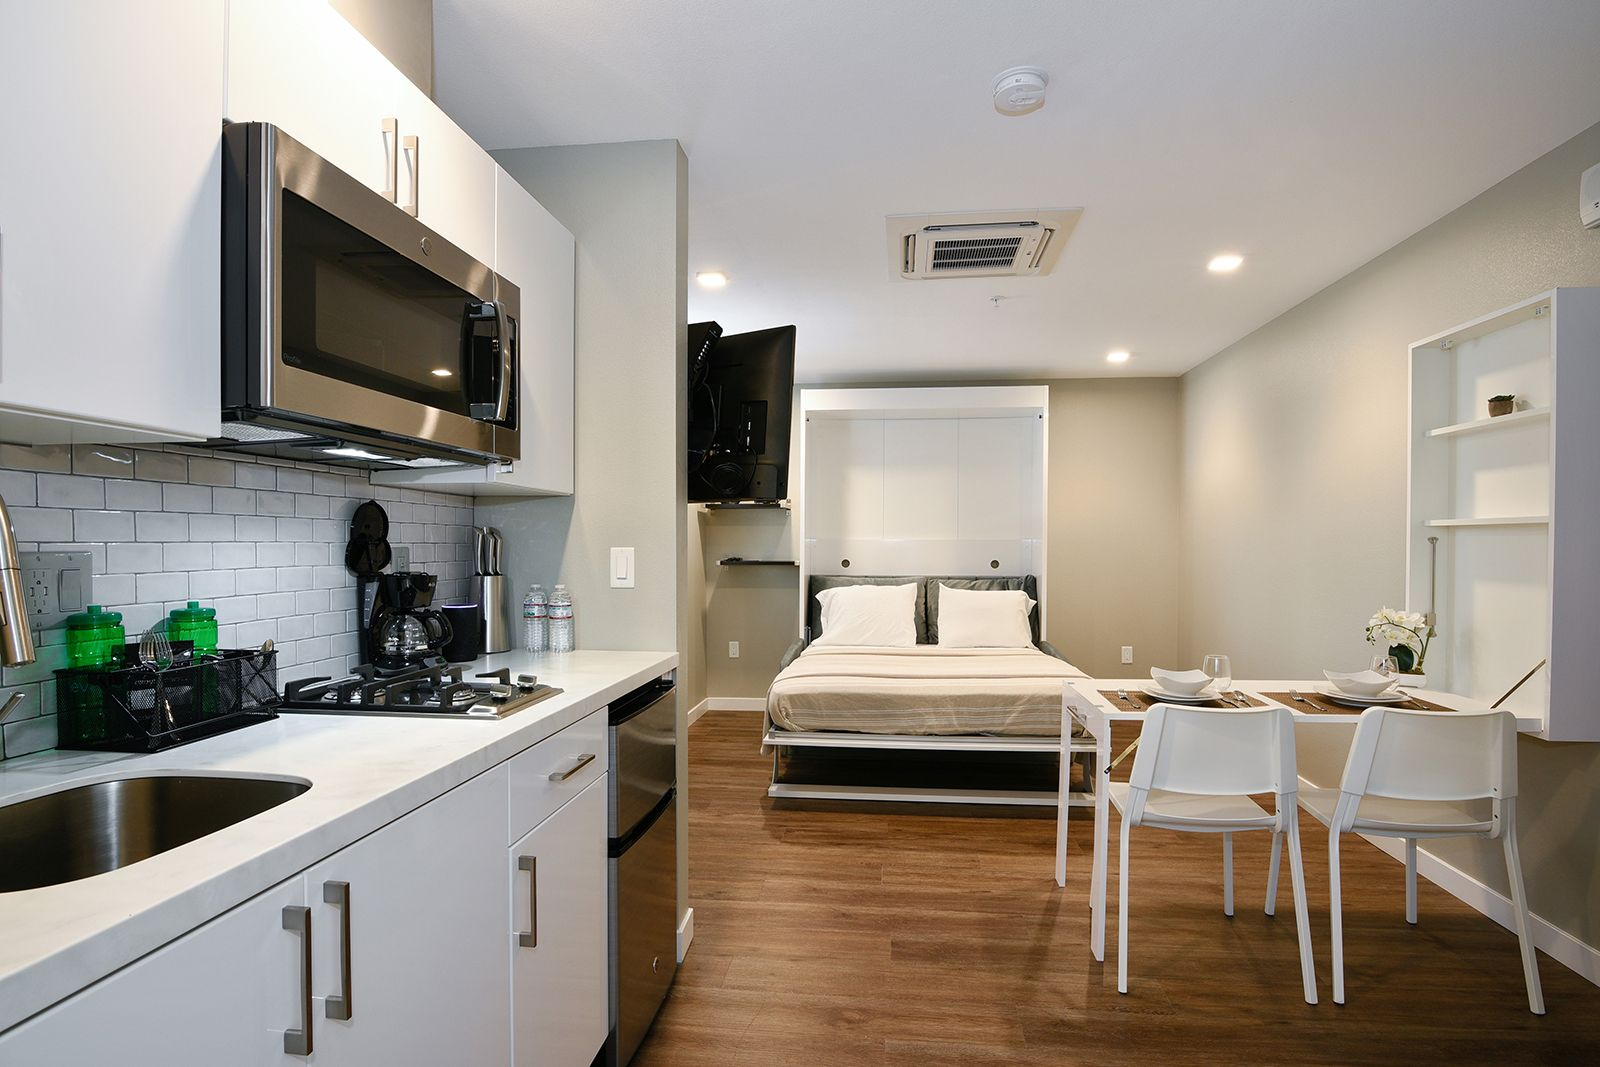 Our Fully Furnished Studio Apartment Homes Feature Renovated Interiors With High End Appliance And Furniture A Apartments For Rent Micro Apartment Chair Design